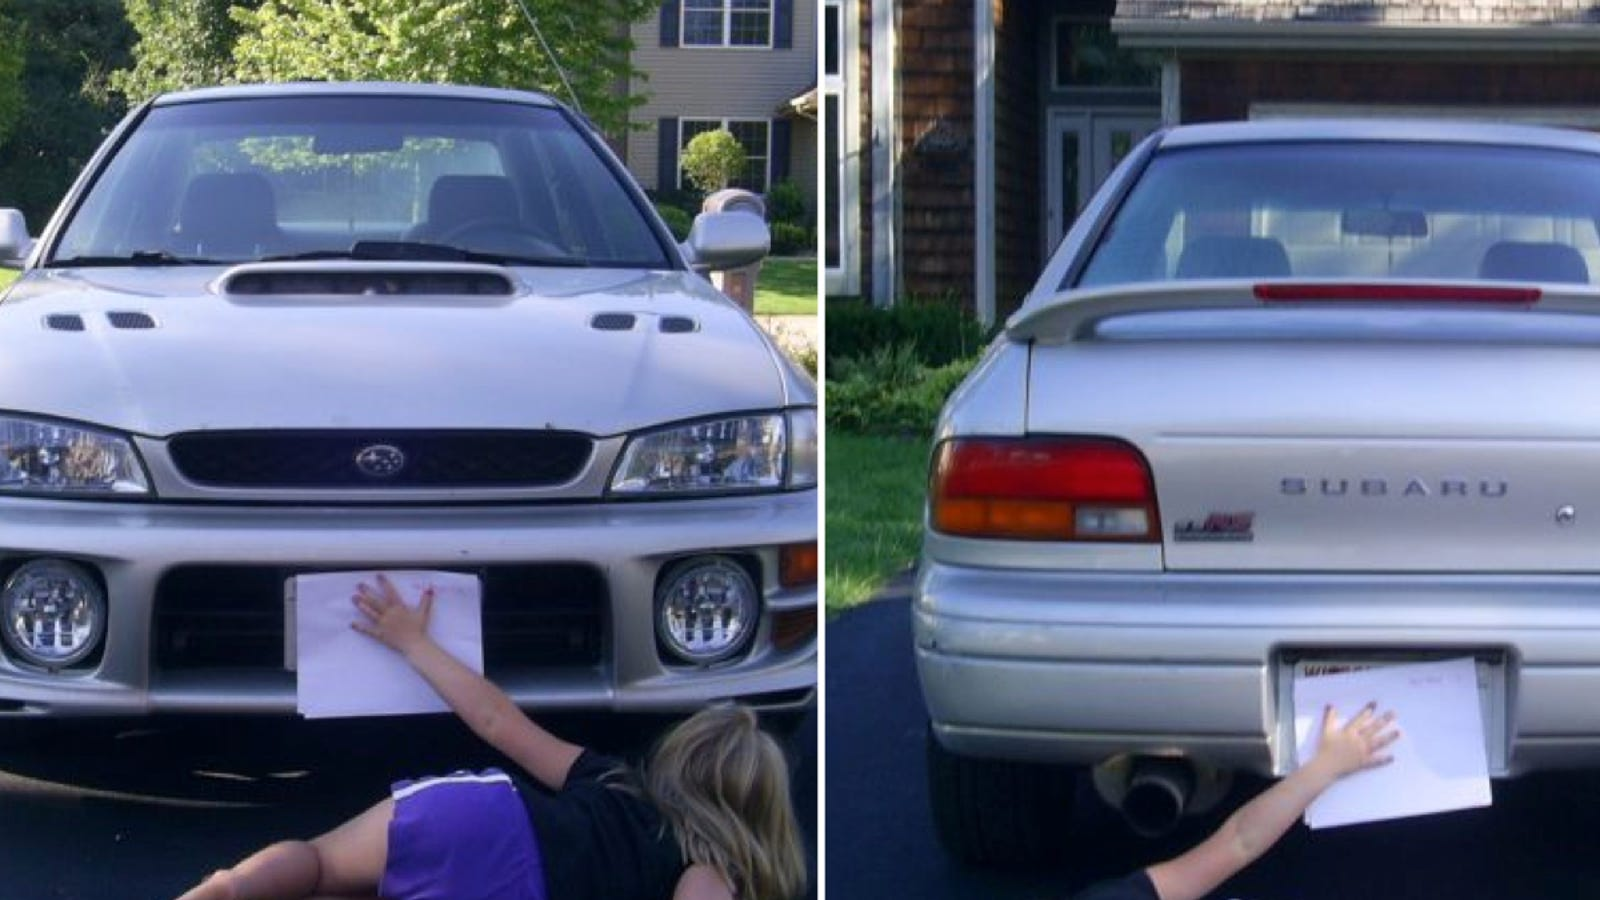 Craigslist Racine Cars: This Is The Laziest Thing We've Ever Seen On Craigslist